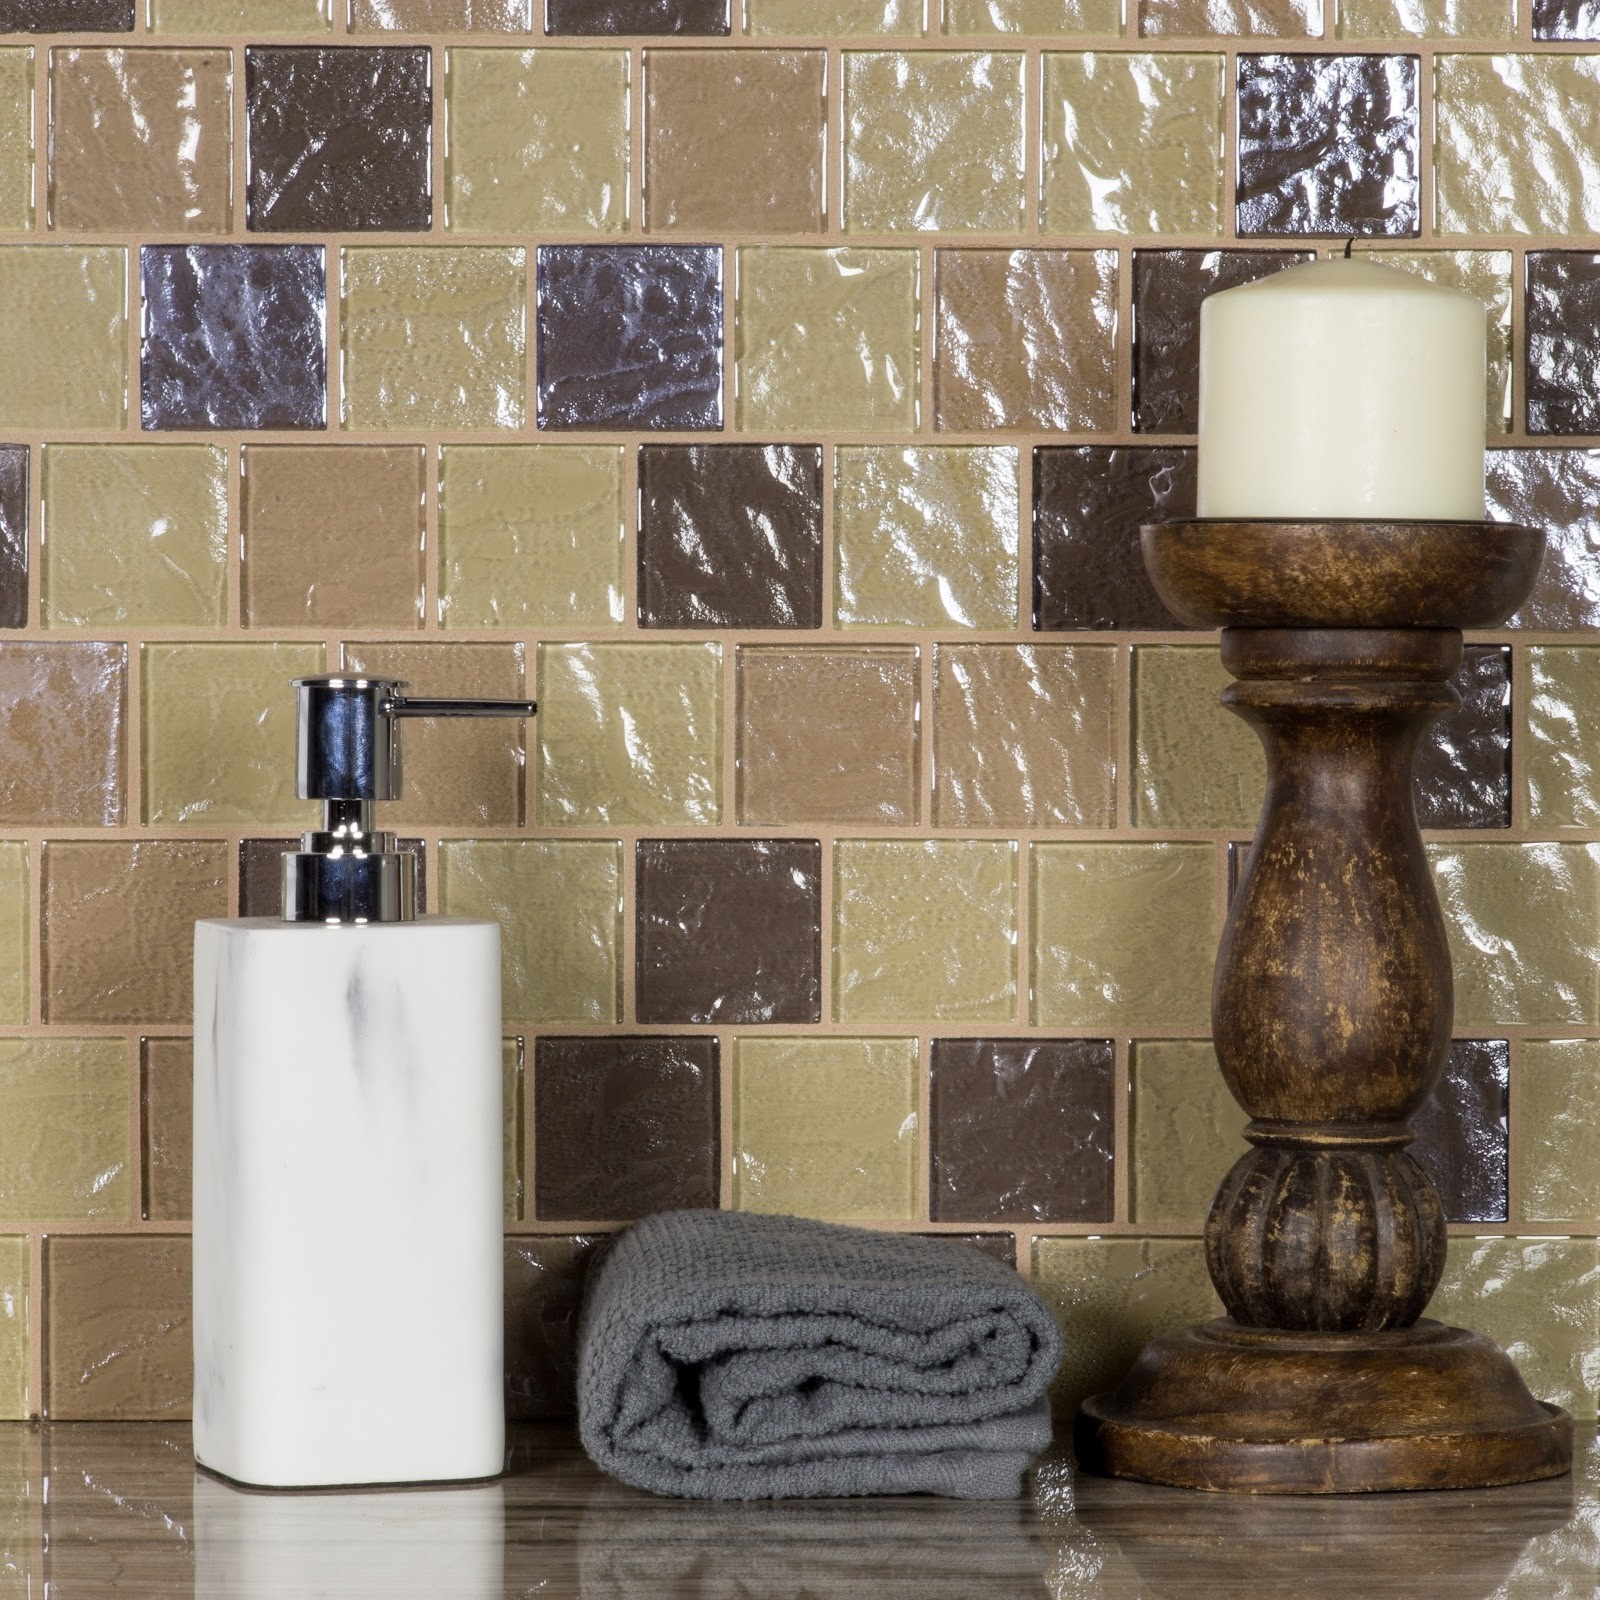 Geo 2 in x 2 in Glass Brick Mosaic in PUPUKEA Textured